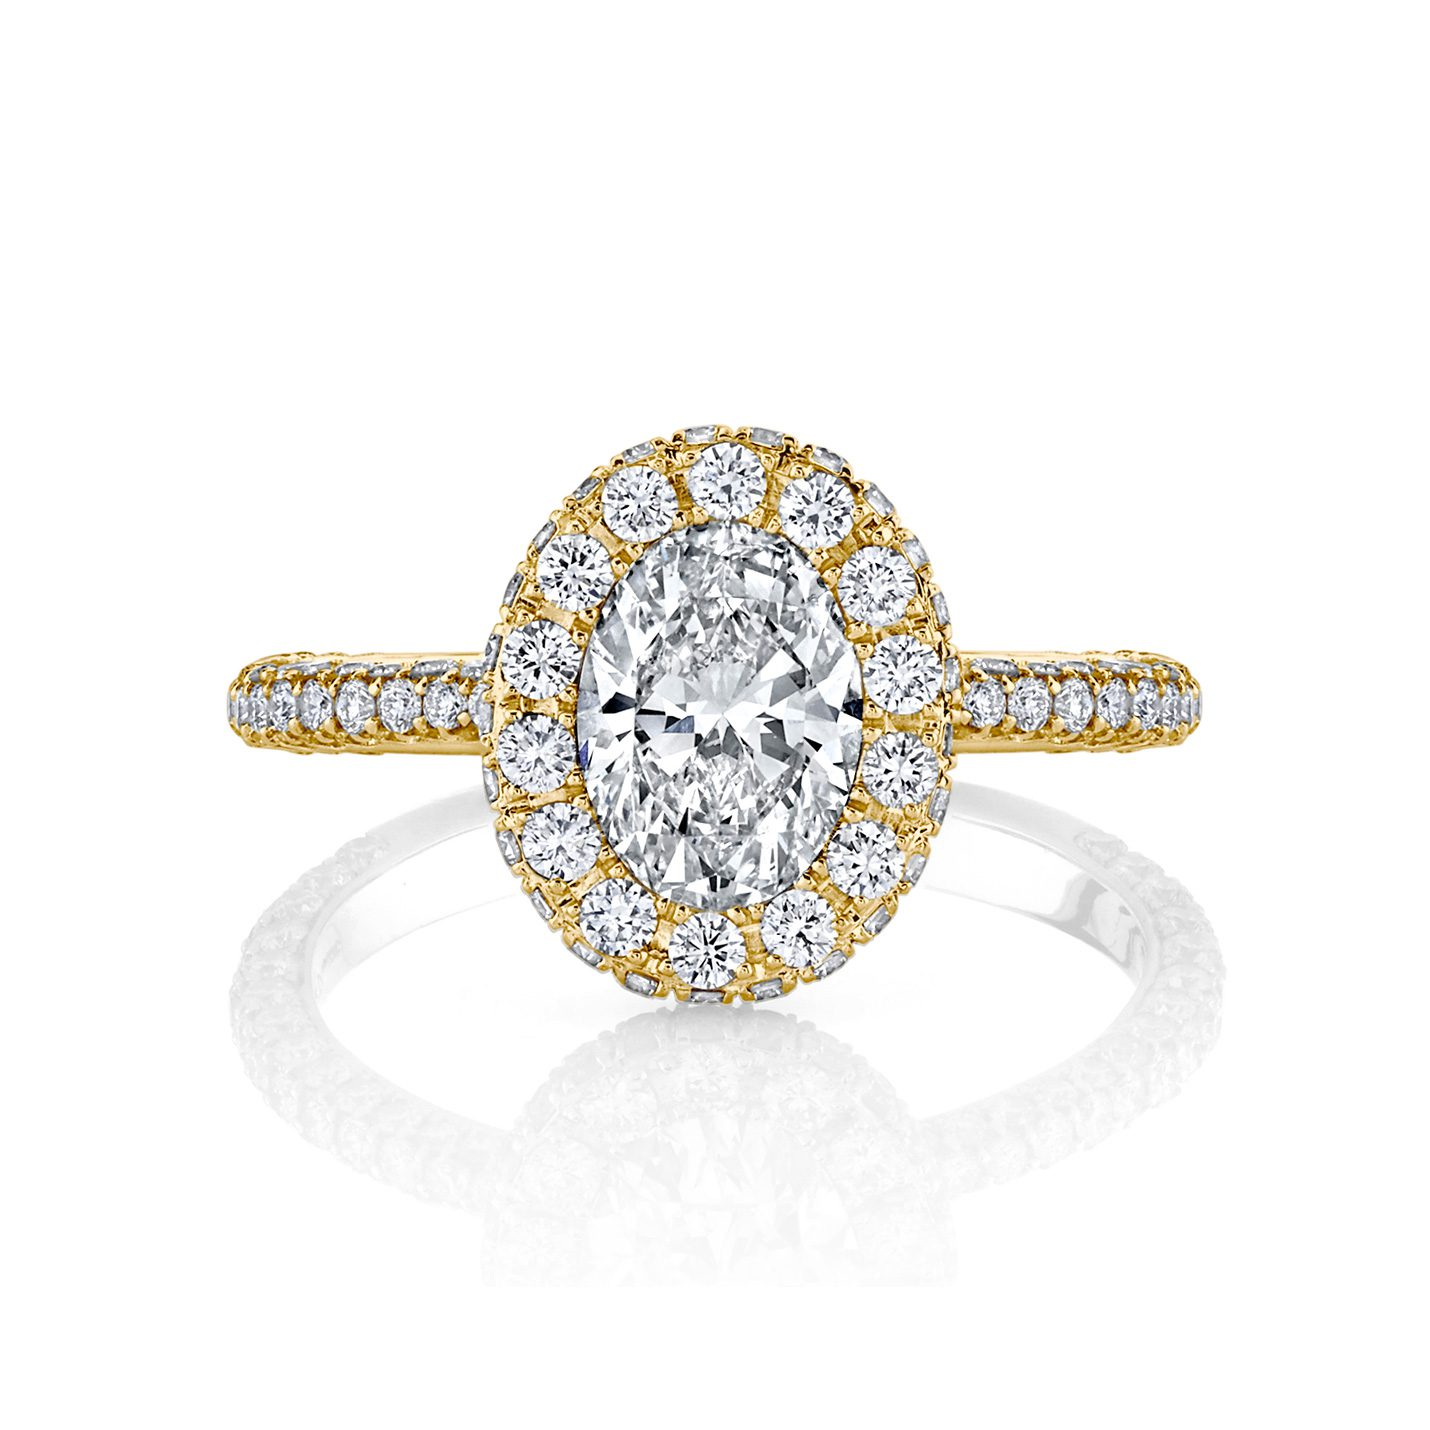 Jacqueline Oval Seamless Halo® Engagement Ring with diamond pavé in 18k Yellow Gold Front View by Oui by Jean Dousset